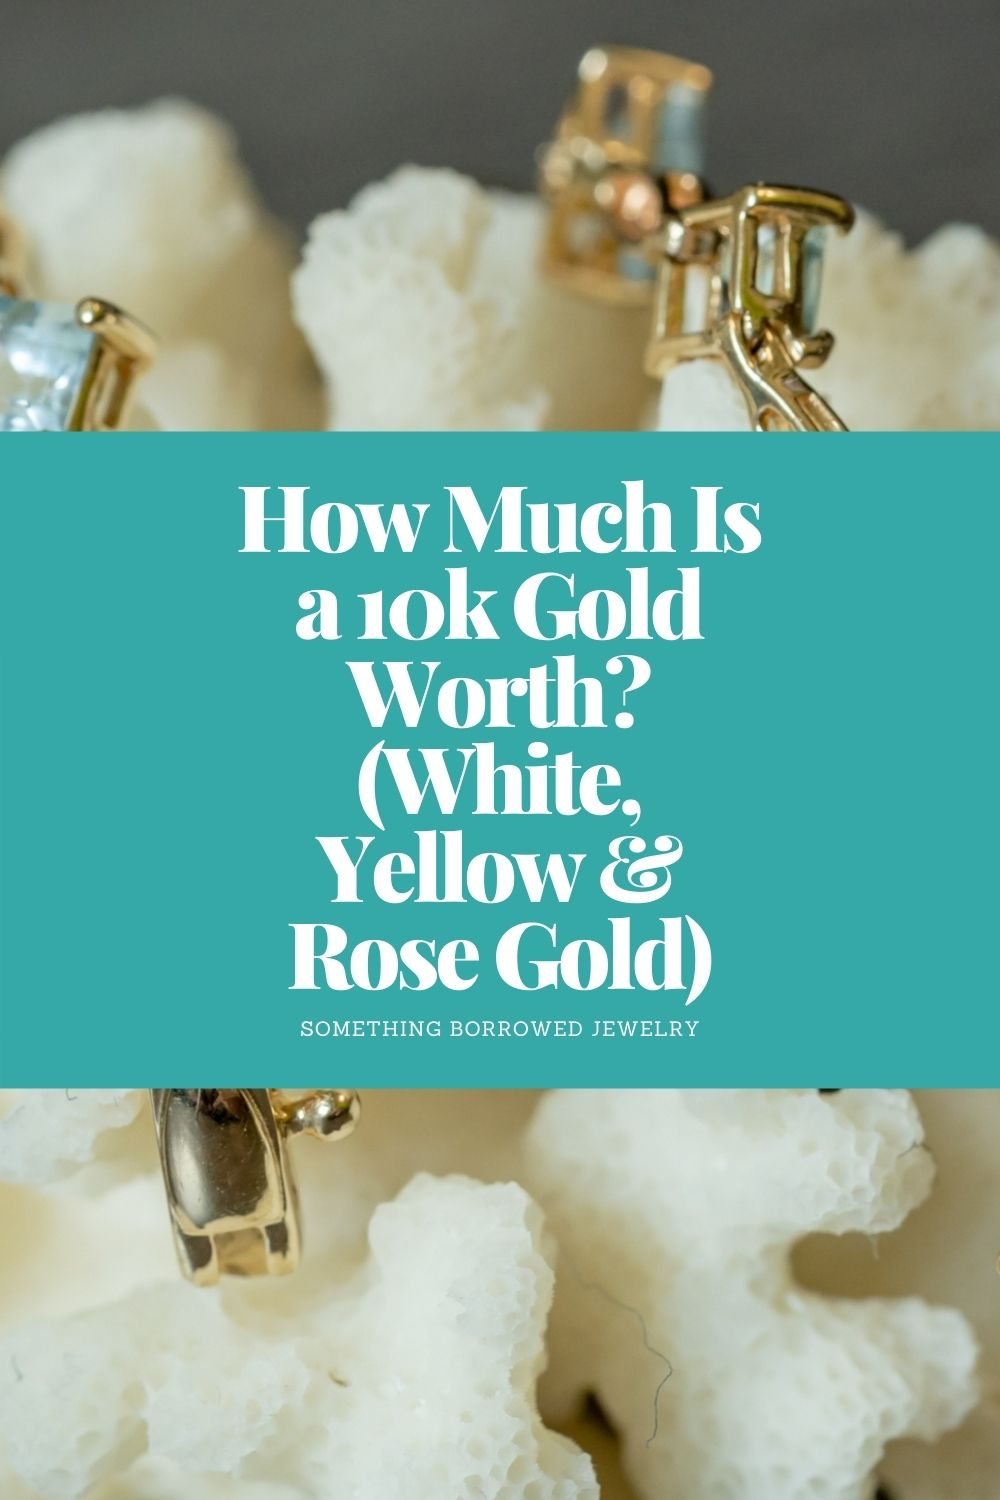 How Much Is a 10k Gold Worth (White, Yellow & Rose Gold) pin 2